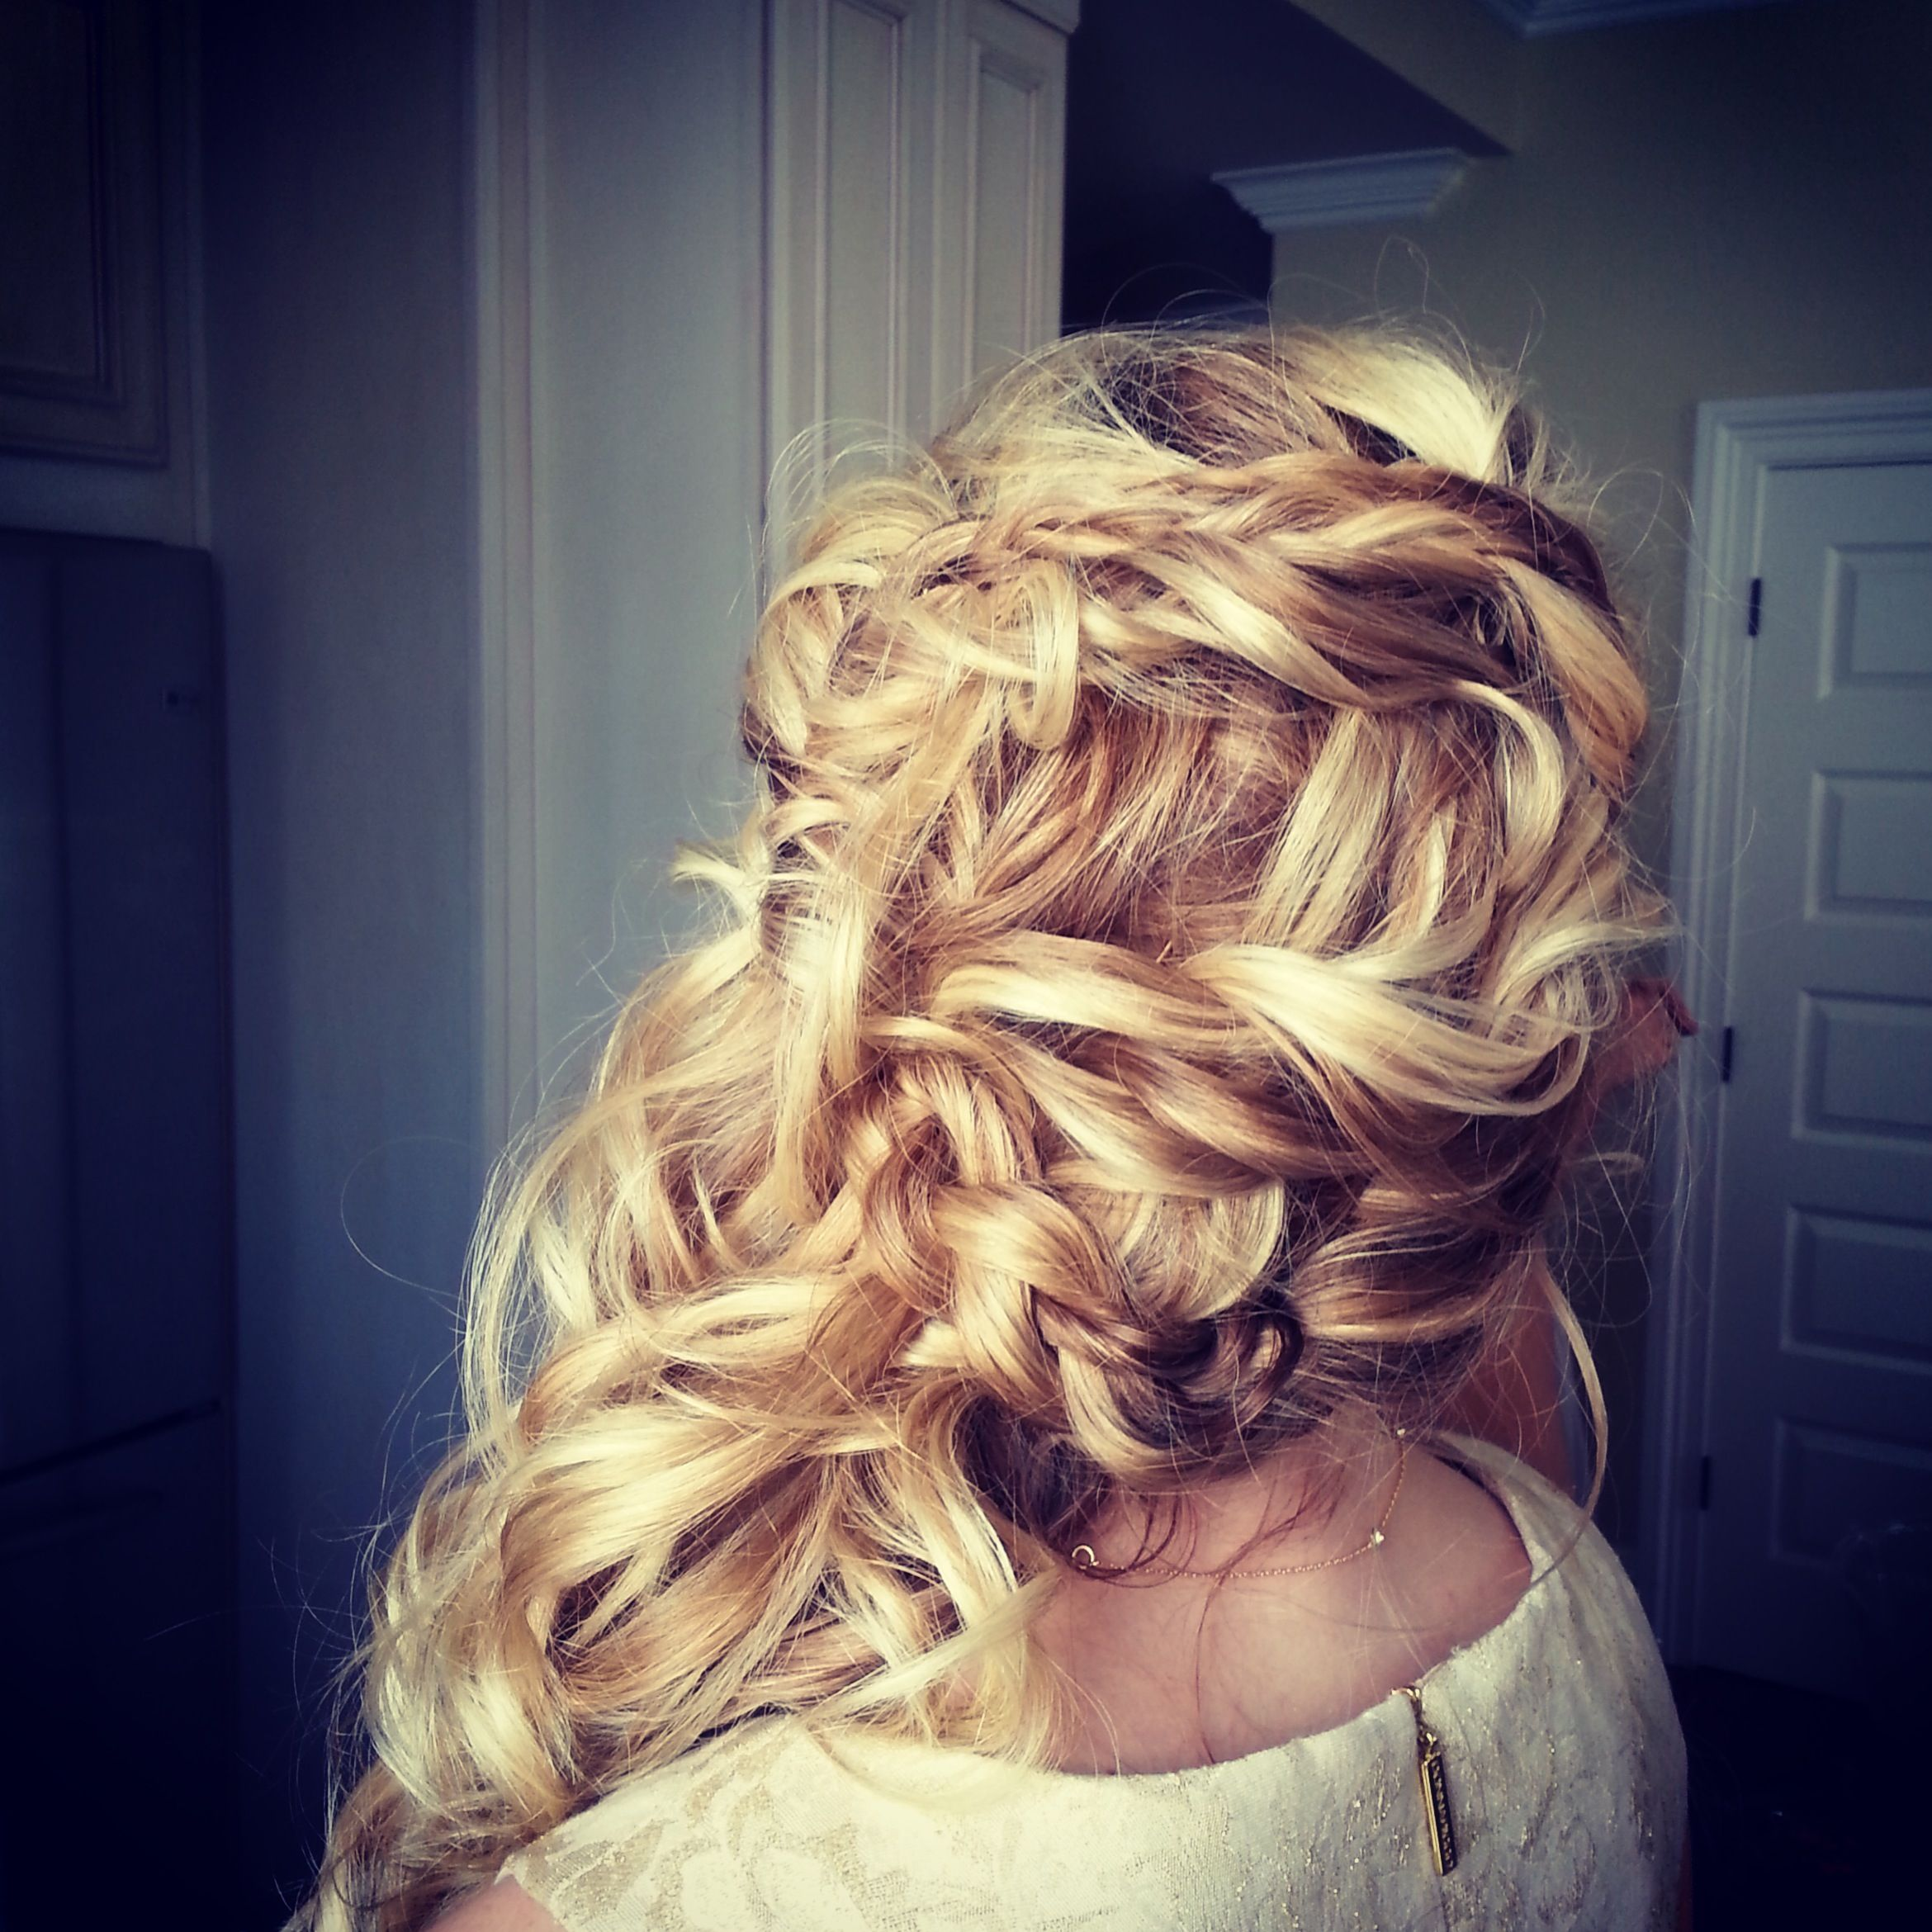 wavy bridal hair, bridal hair with braids, half down wedding hair